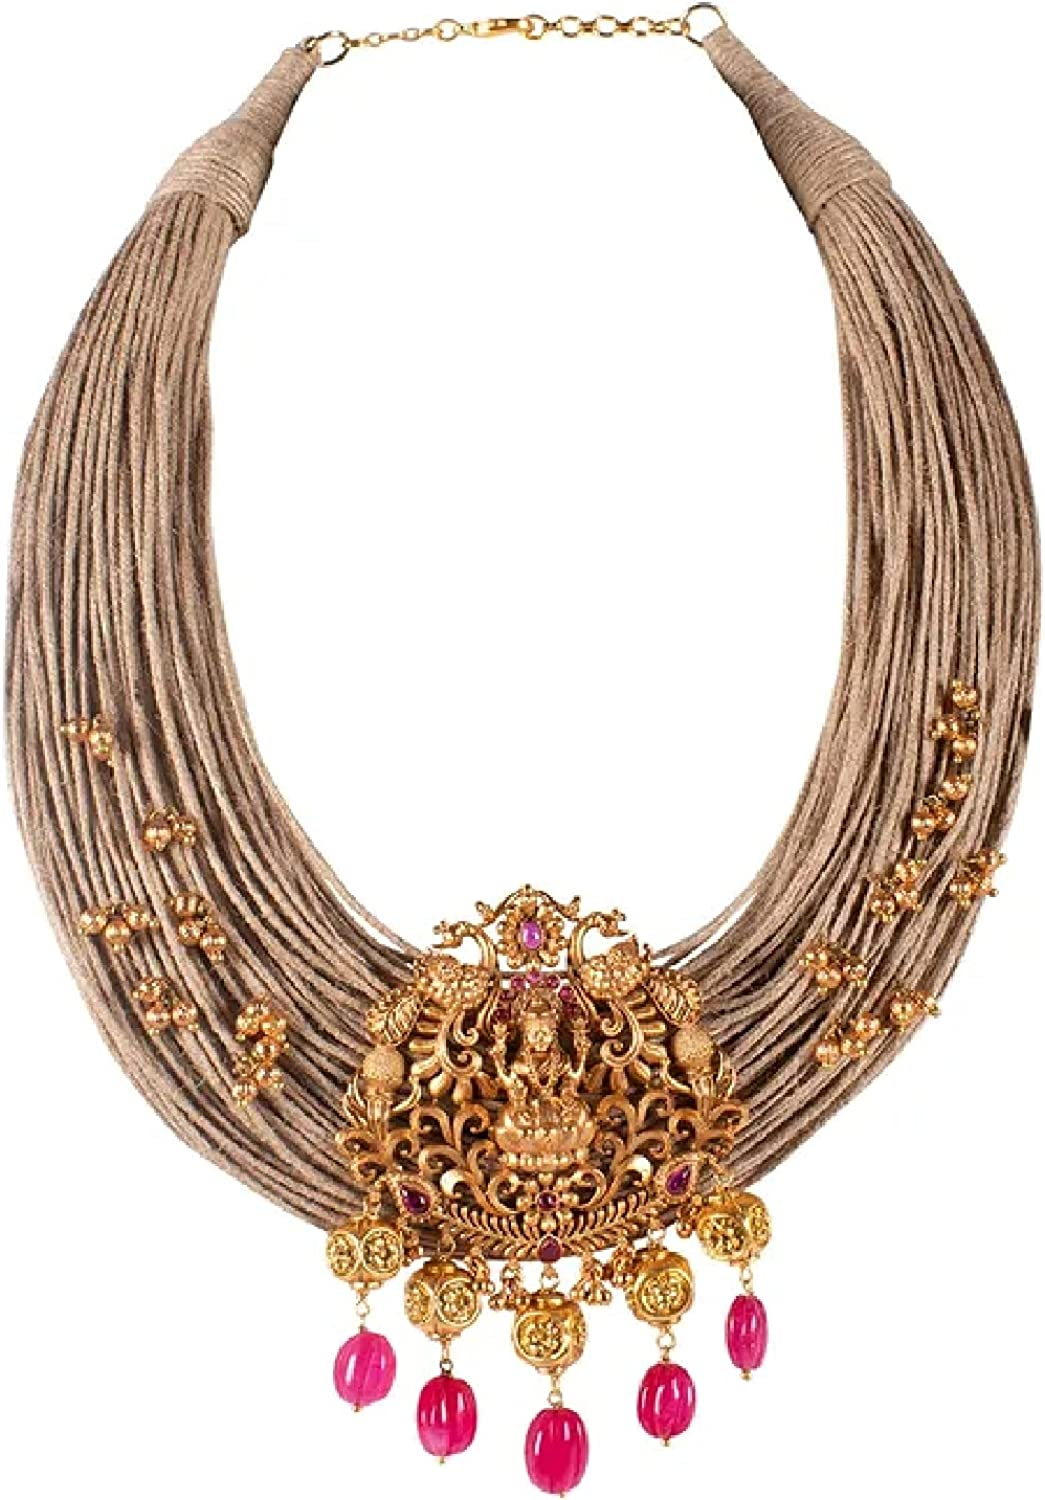 Antique Gold Plated Jute Thread Pink hydro Ruby Stones & Tumbles Lakshmi Designer Choker Necklace Set   Indian Temple Jewelry